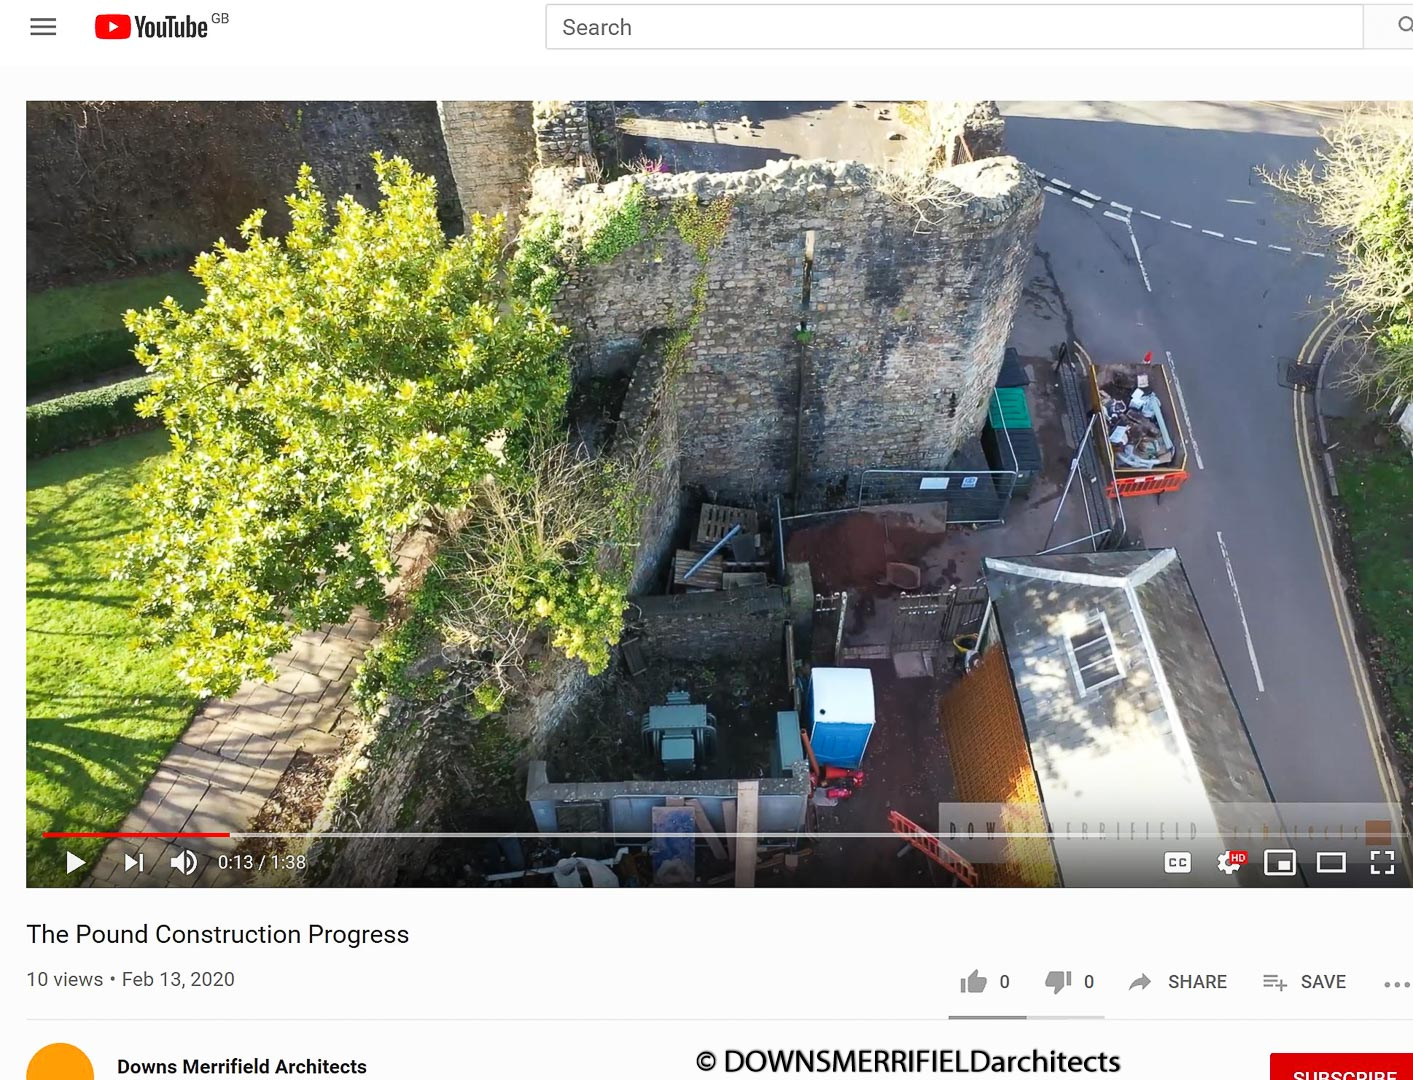 The Pound Llandaff - community project through the lens of a drone